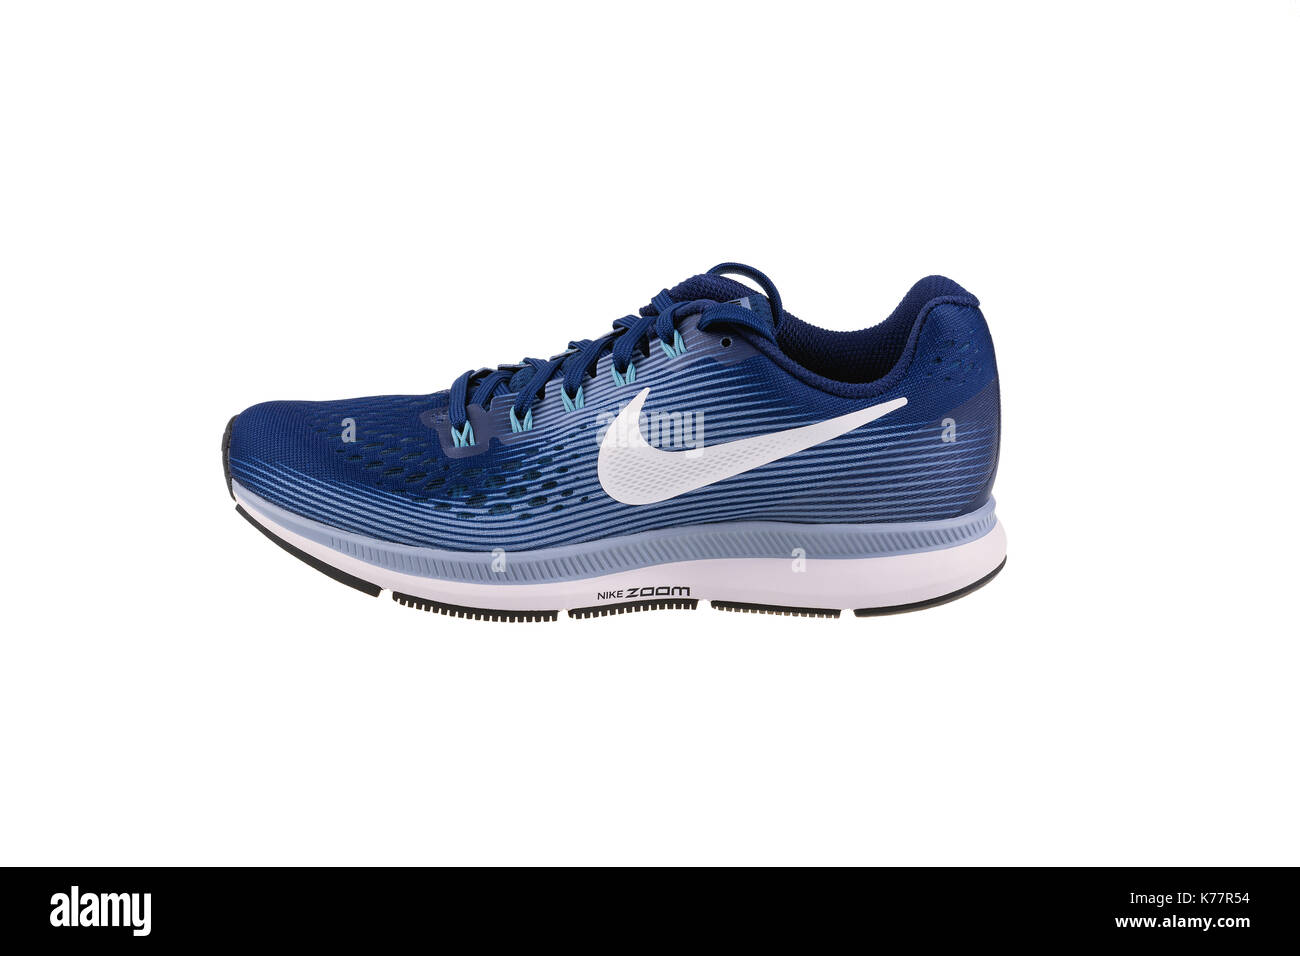 b7f61e798055 ... ireland italy burgas bulgarien september 7 2017 nike air zoom pegasus  34 damen laufschuhe in blau